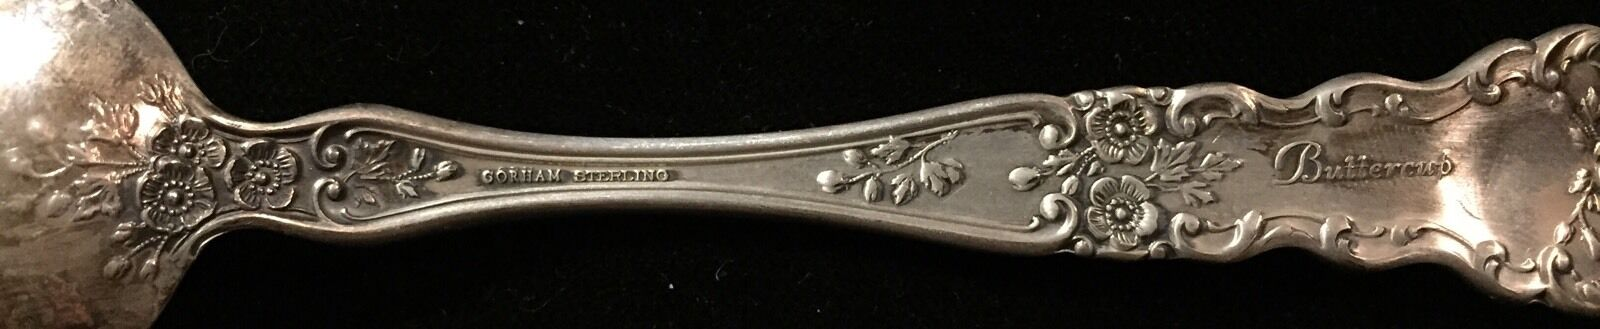 Sterling Silver Flatware - Gorham Buttercup Teaspoon